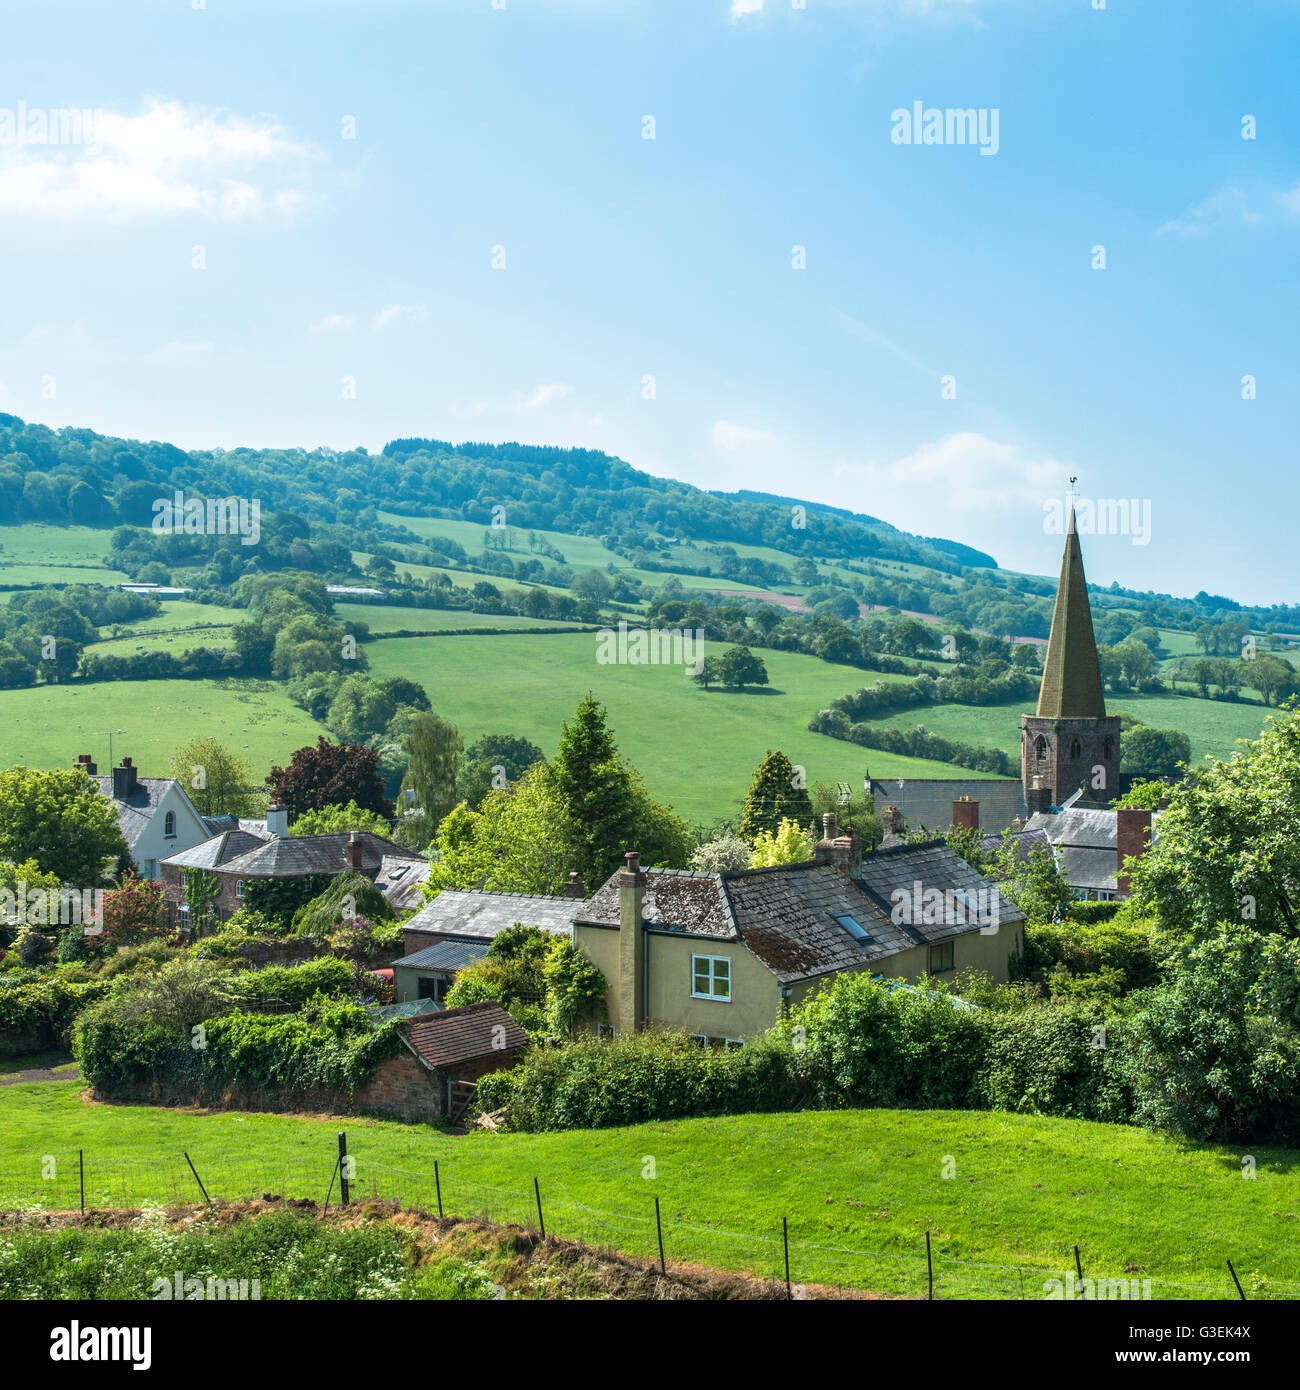 A small village and church spire in arural valley on a summer day. - Stock Image